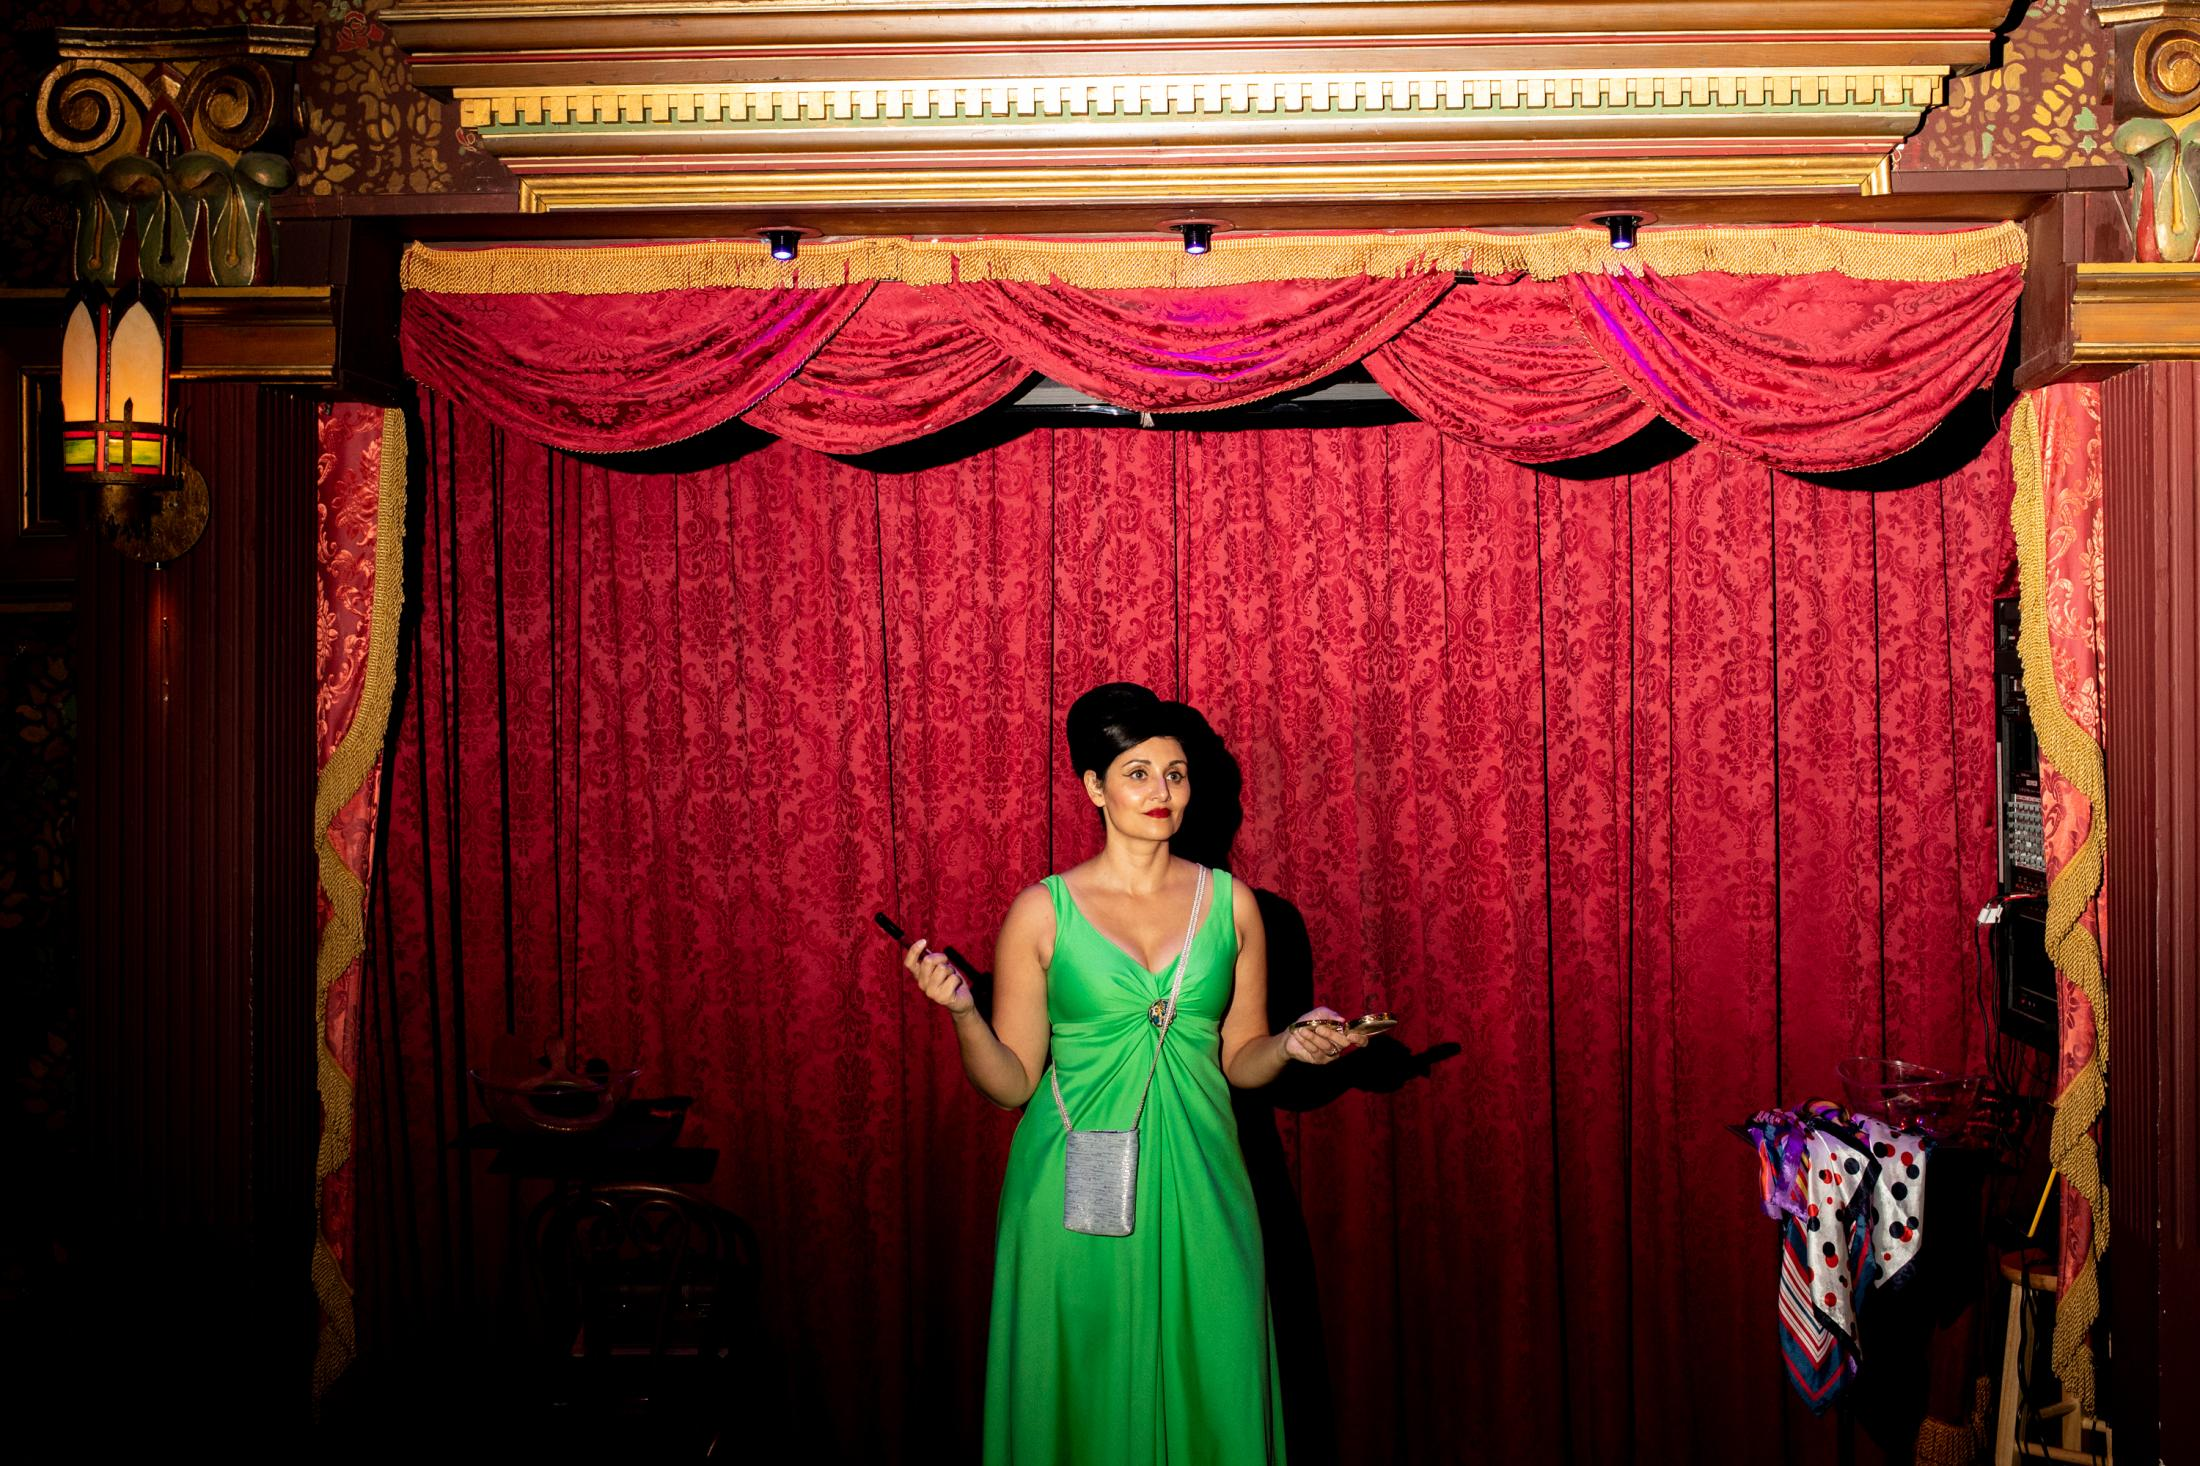 Simone Turkington,42, rehearses before her show at the Magic Castle in Hollywood.